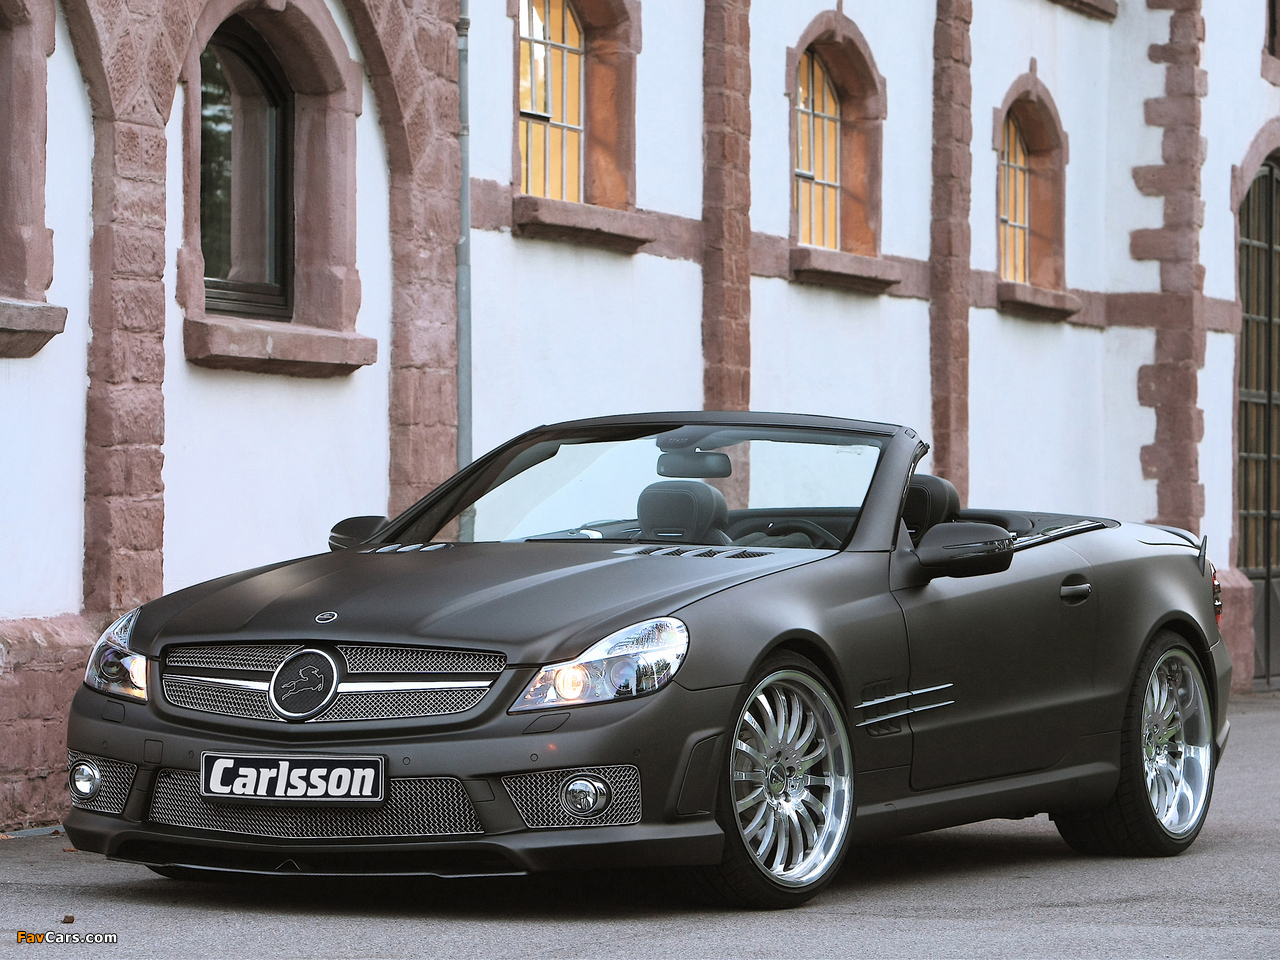 Carlsson CK 63 RS (R230) 2009 wallpapers (1280 x 960)